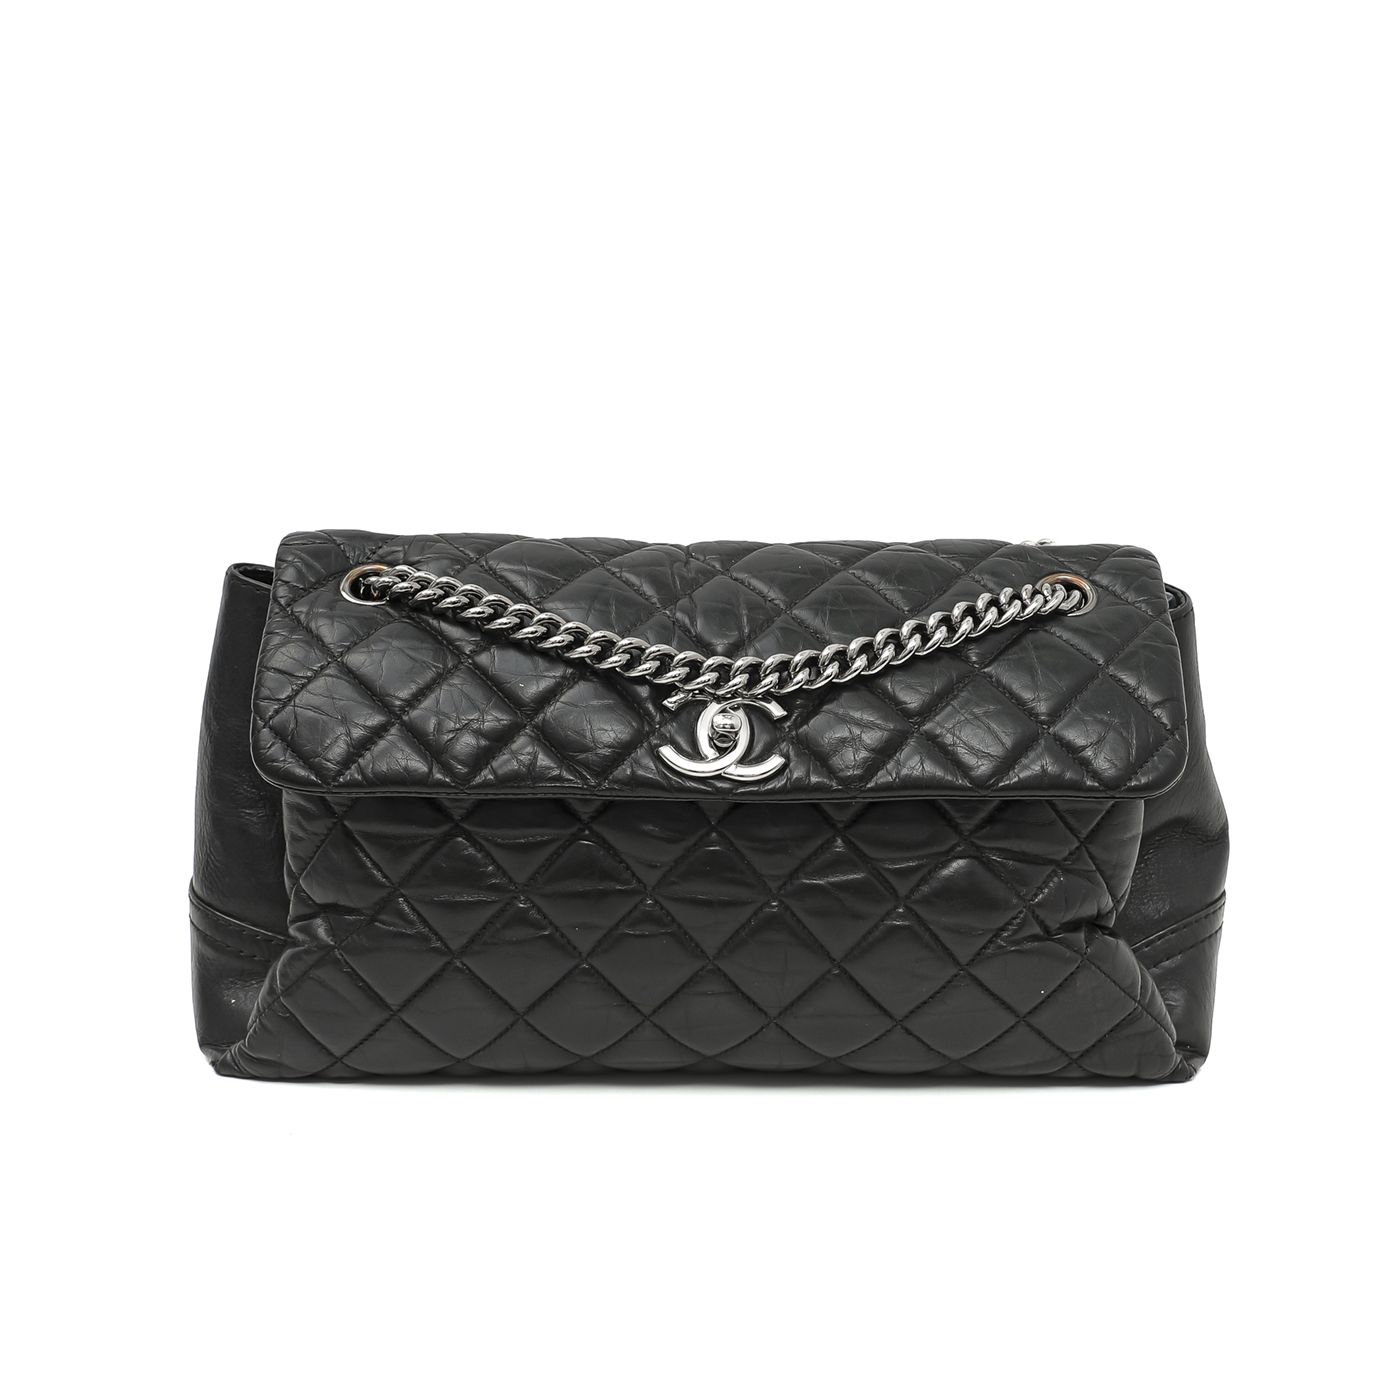 Chanel Black Lady Pearly Flap Bag